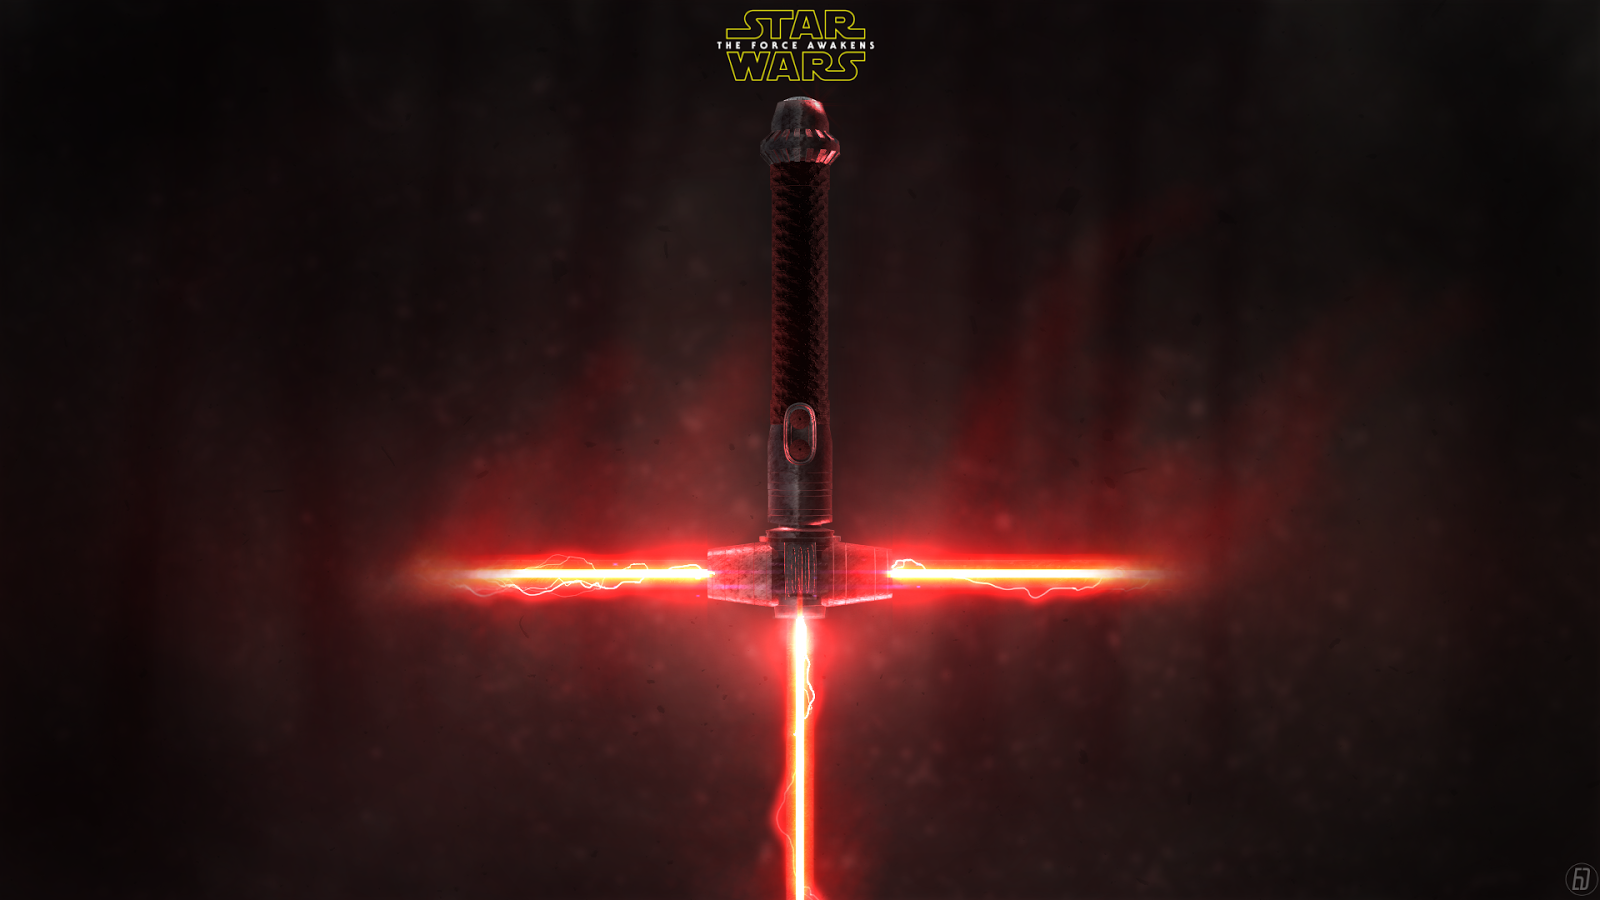 Star Wars the Force Awakens new lightsaber